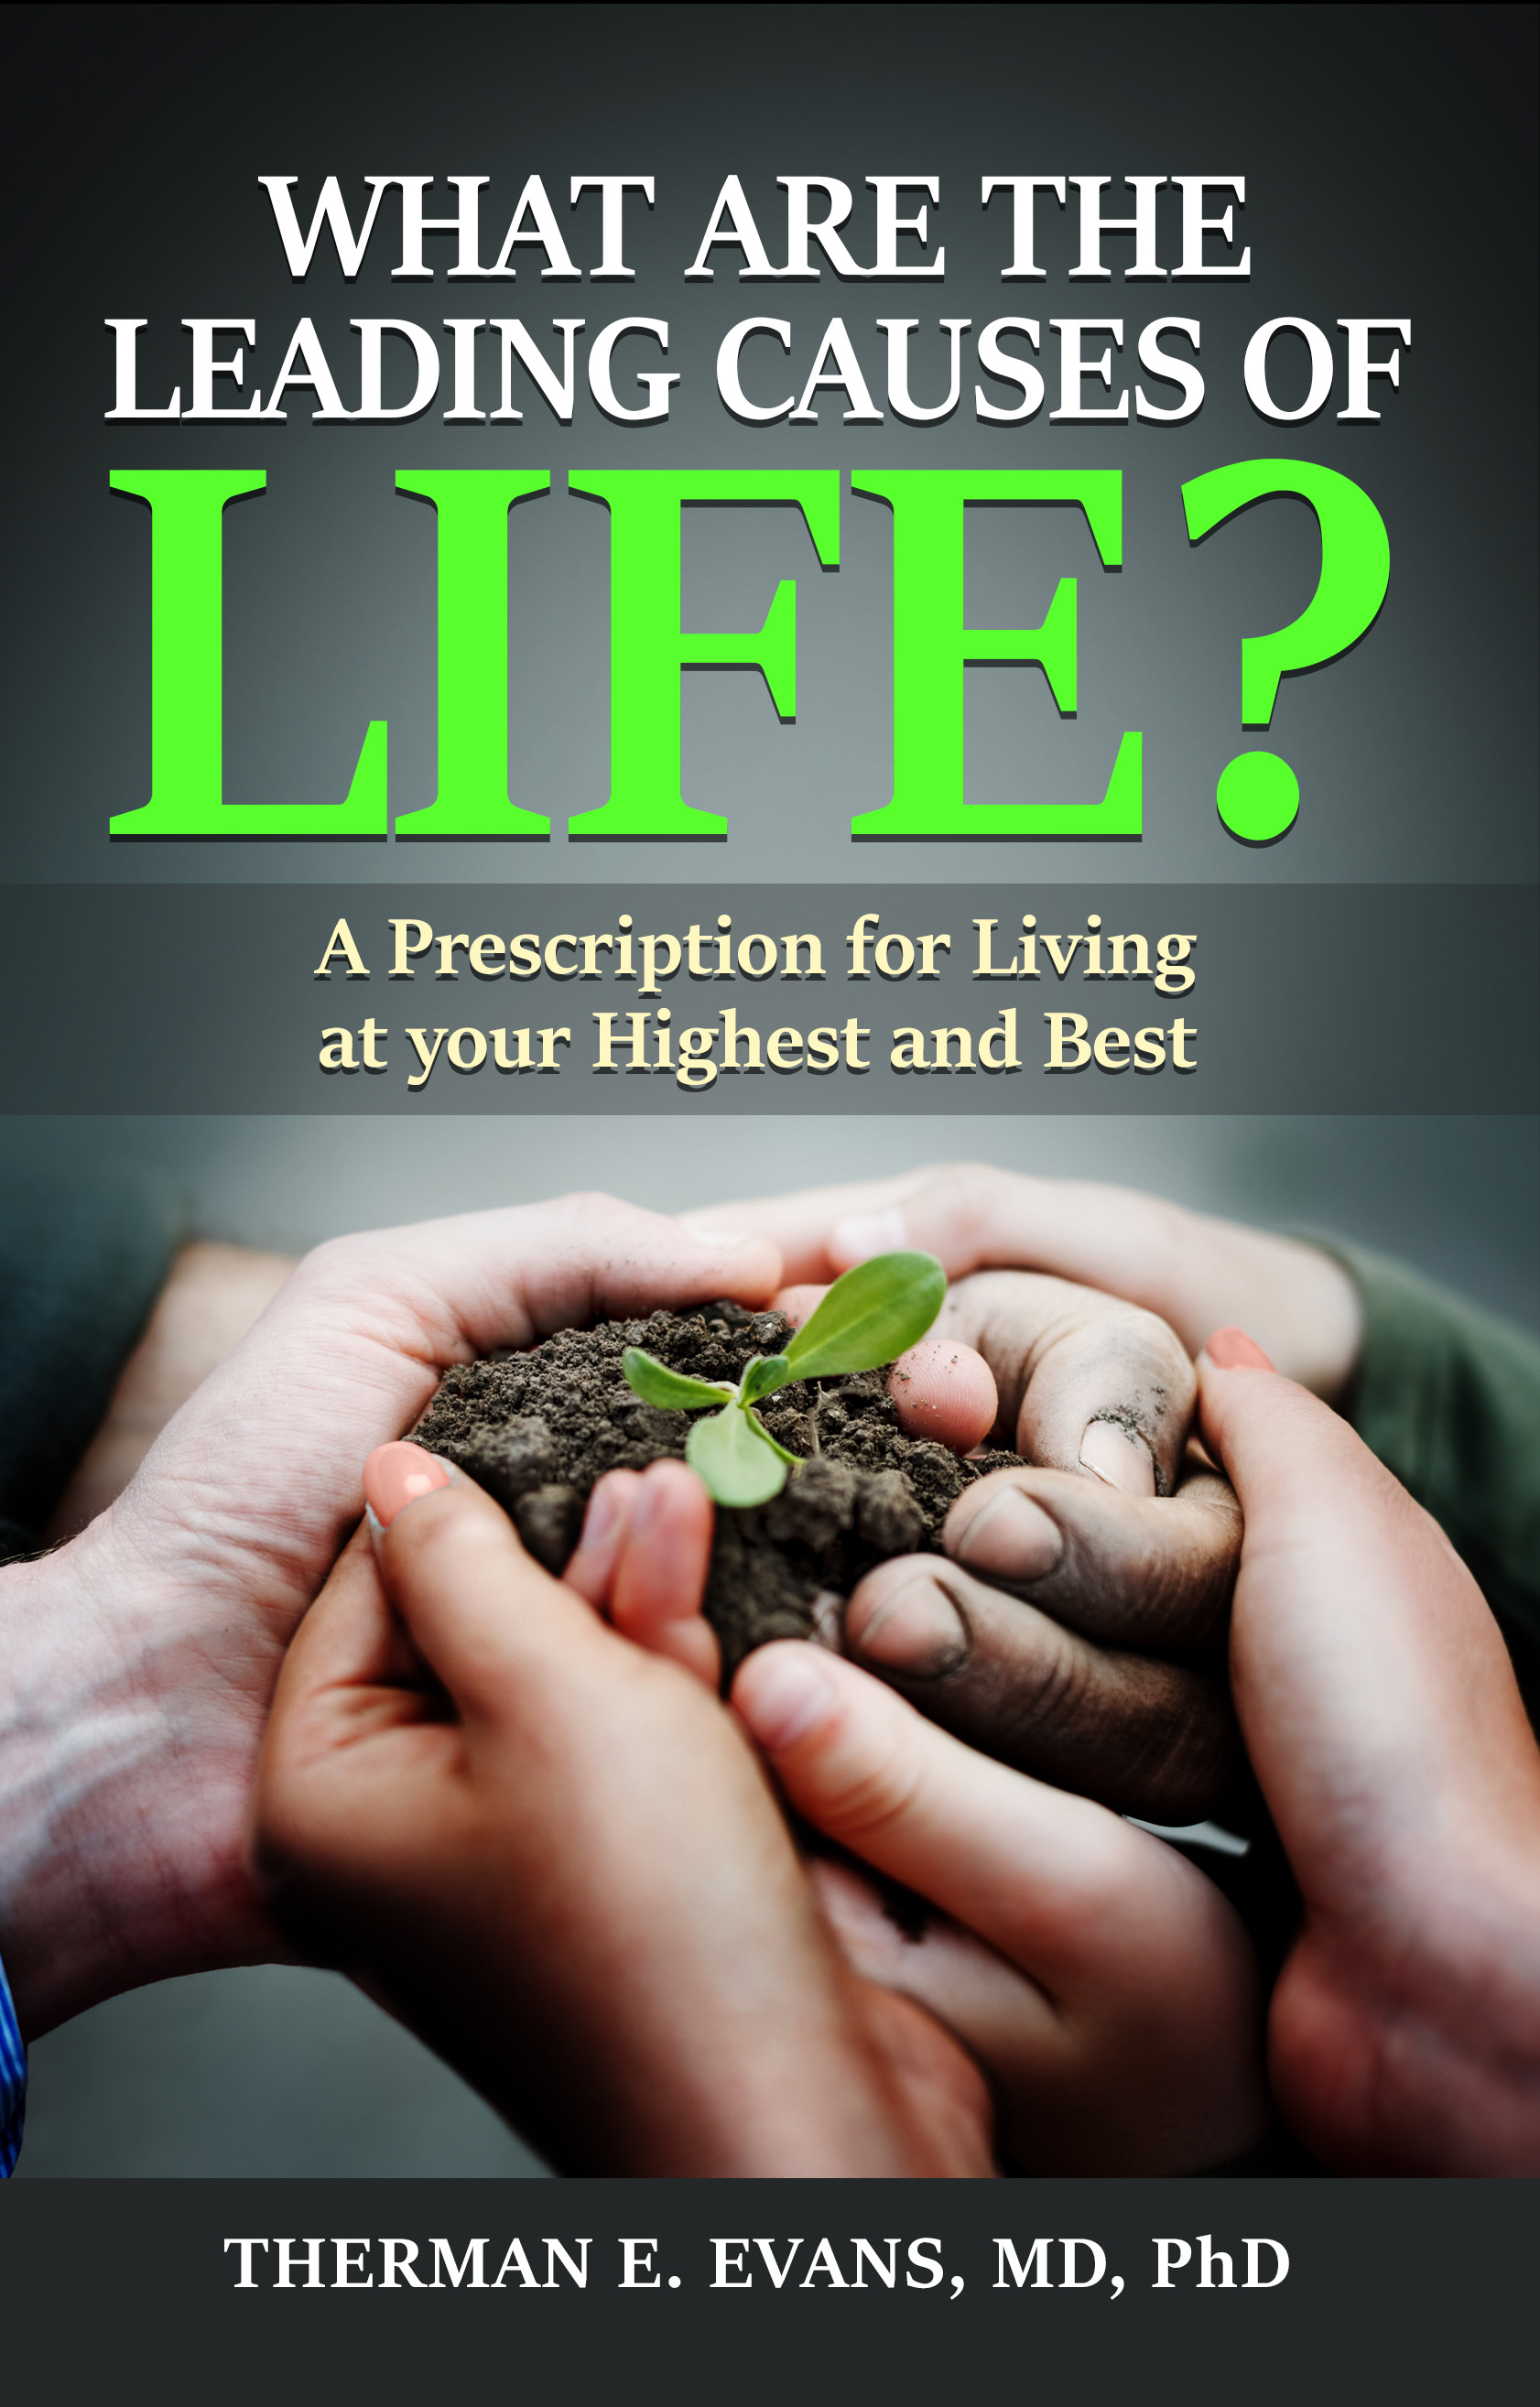 WHAT ARE THE LEADING CAUSES OF LIFE?